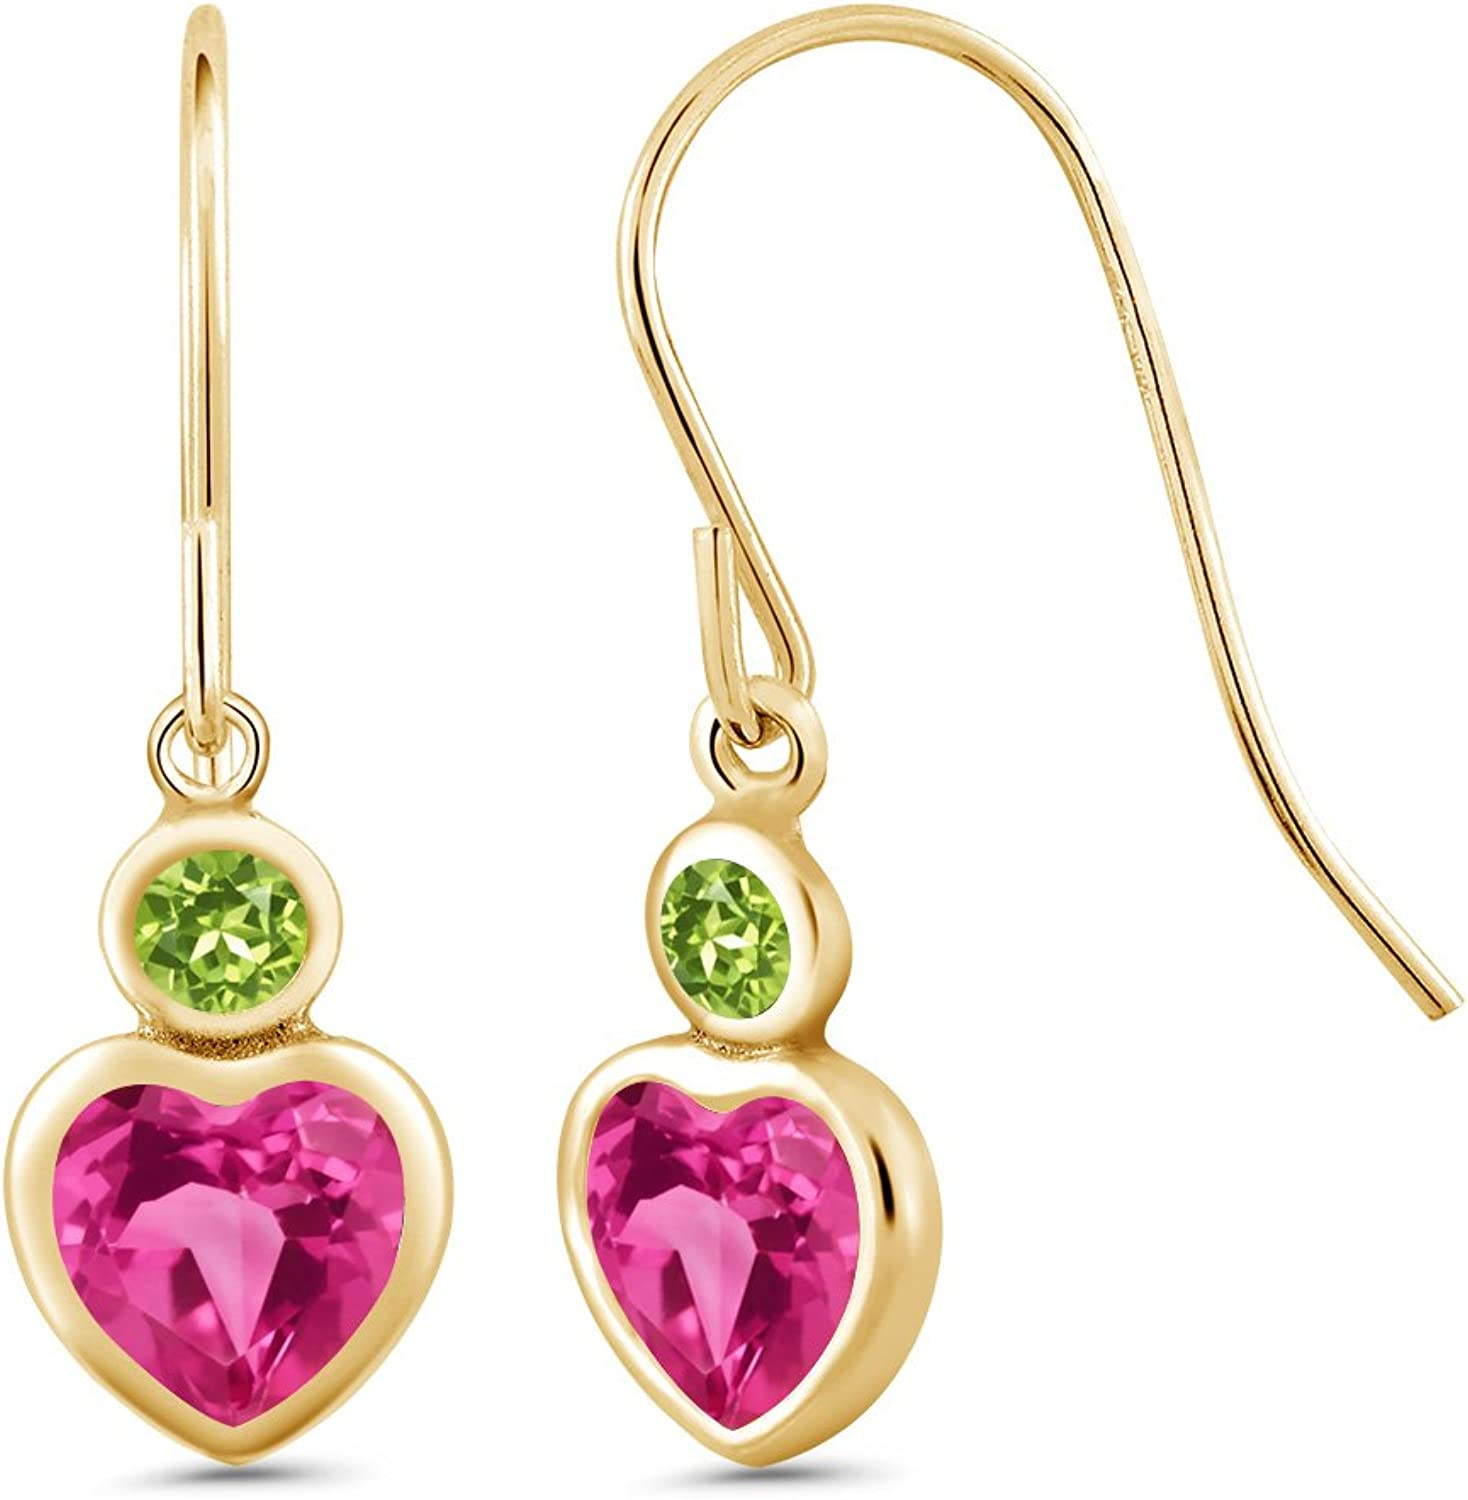 1.44 Ct Heart Shape Pink Created Sapphire Green Peridot 14K Yellow gold Earrings